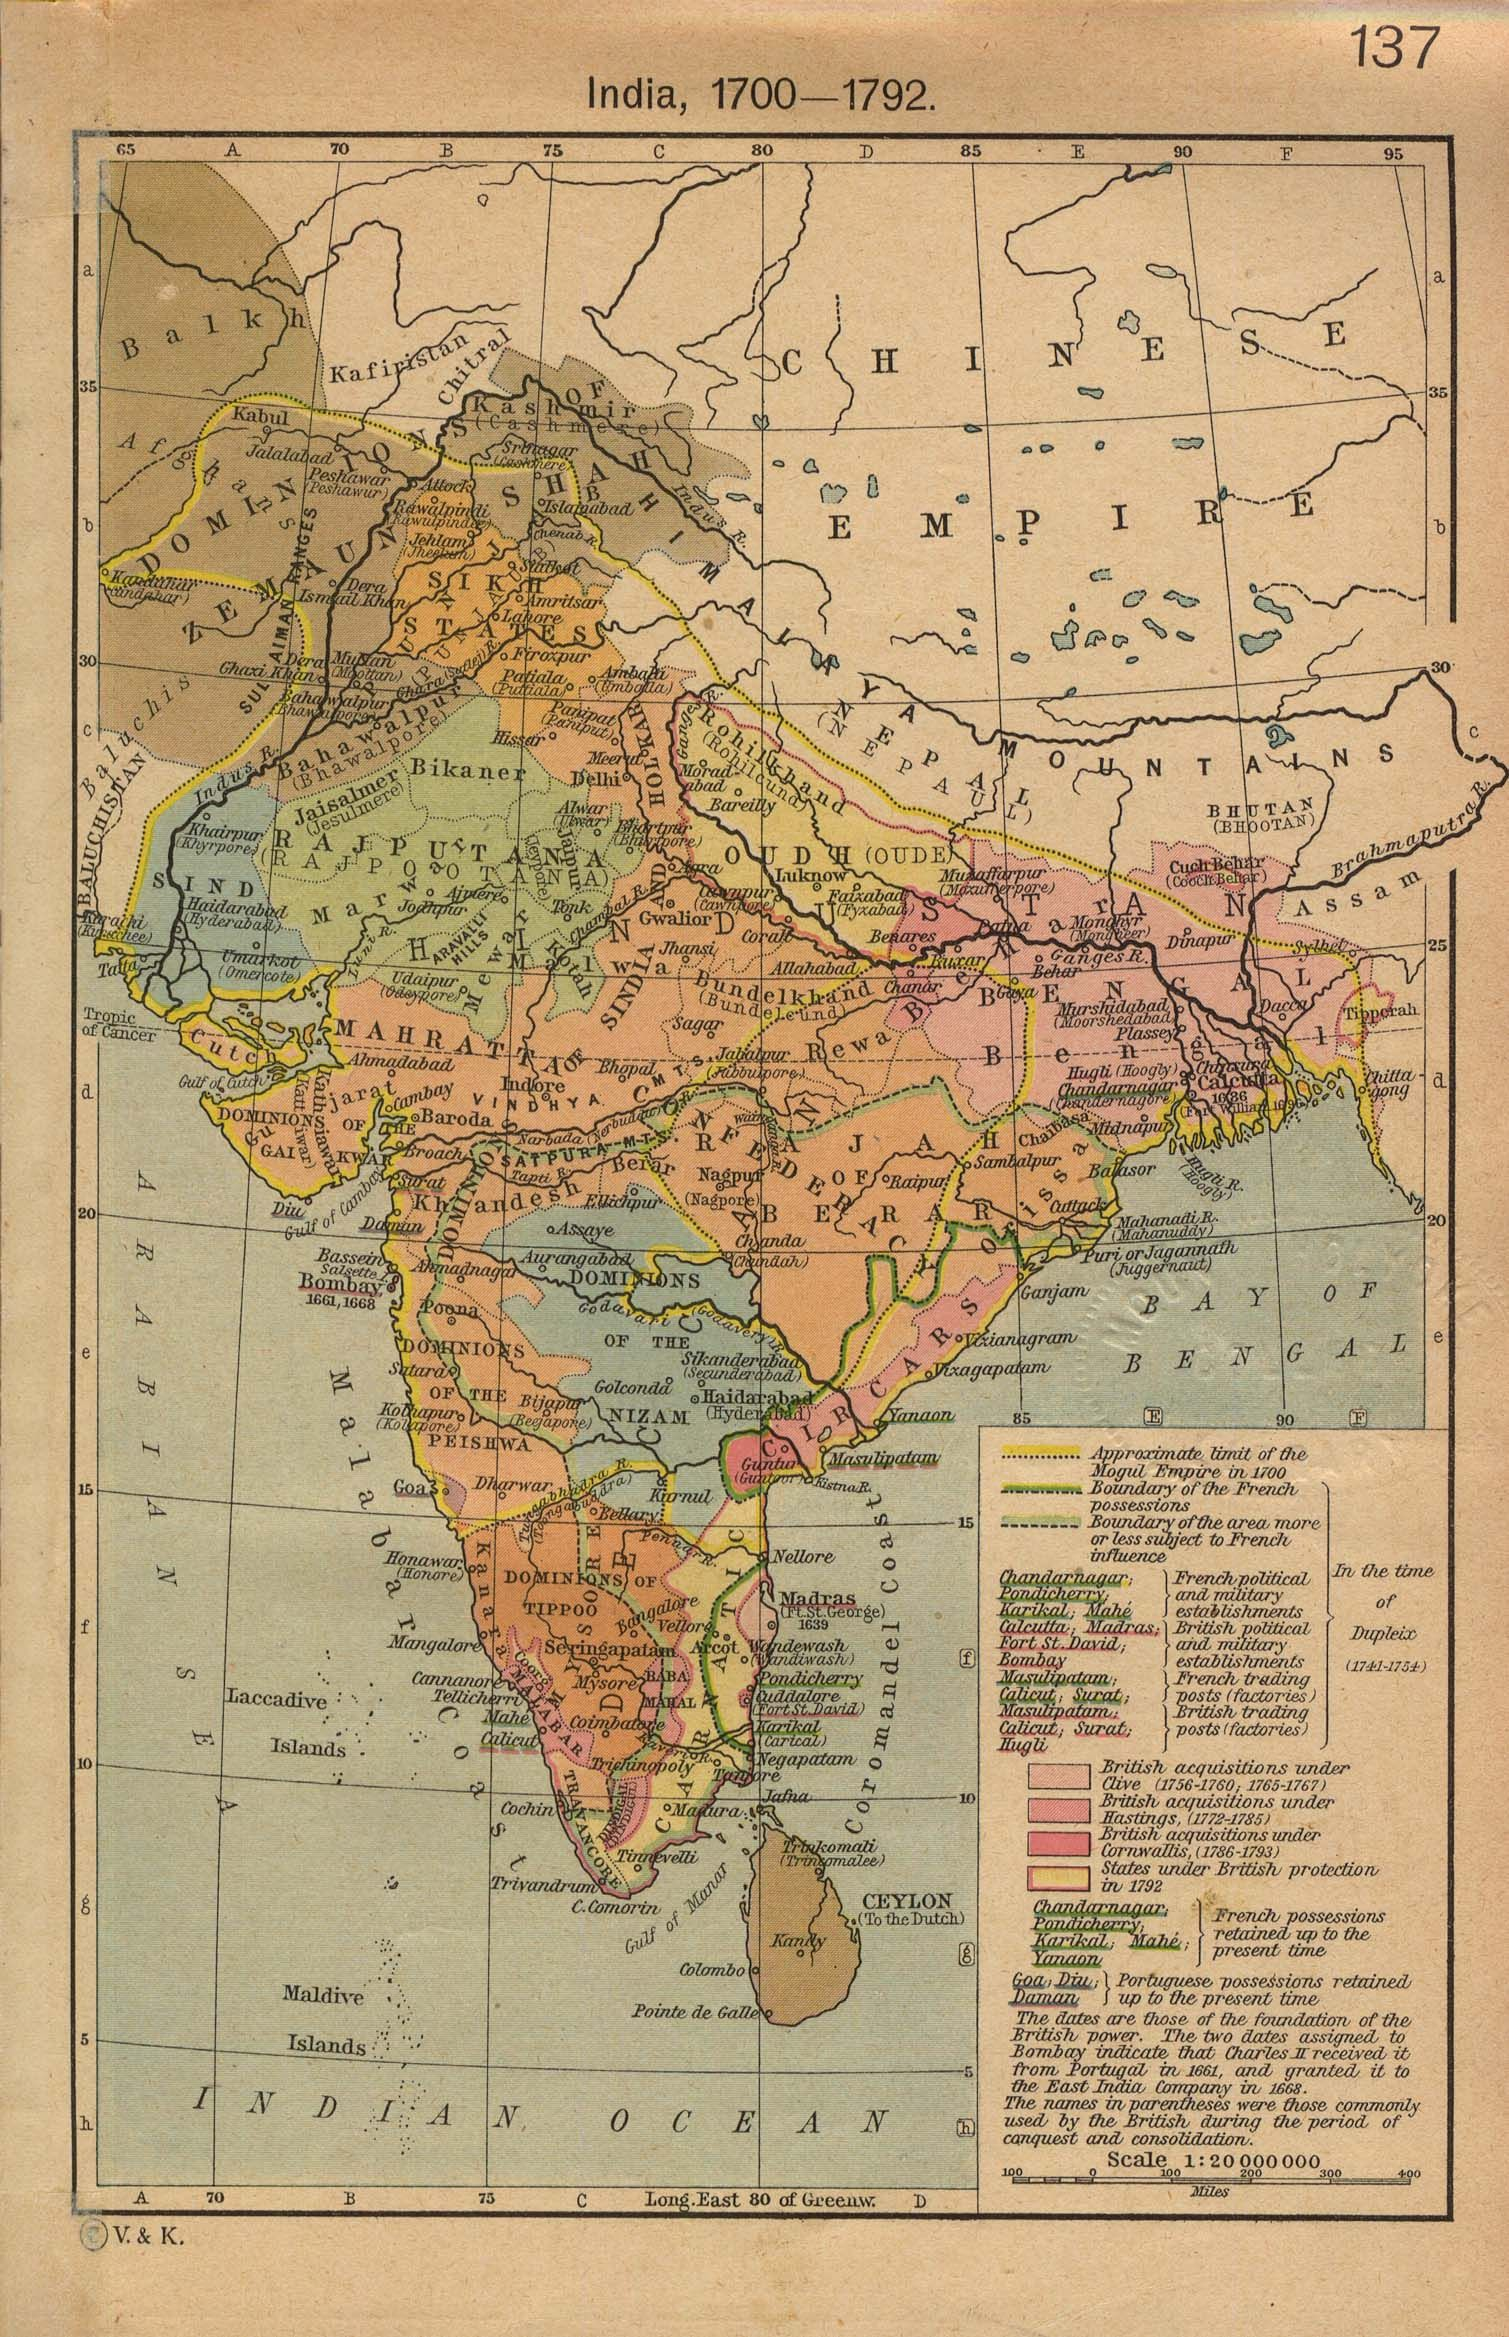 18th century india map india mappery upsc prep pinterest 18th century india map india mappery gumiabroncs Choice Image